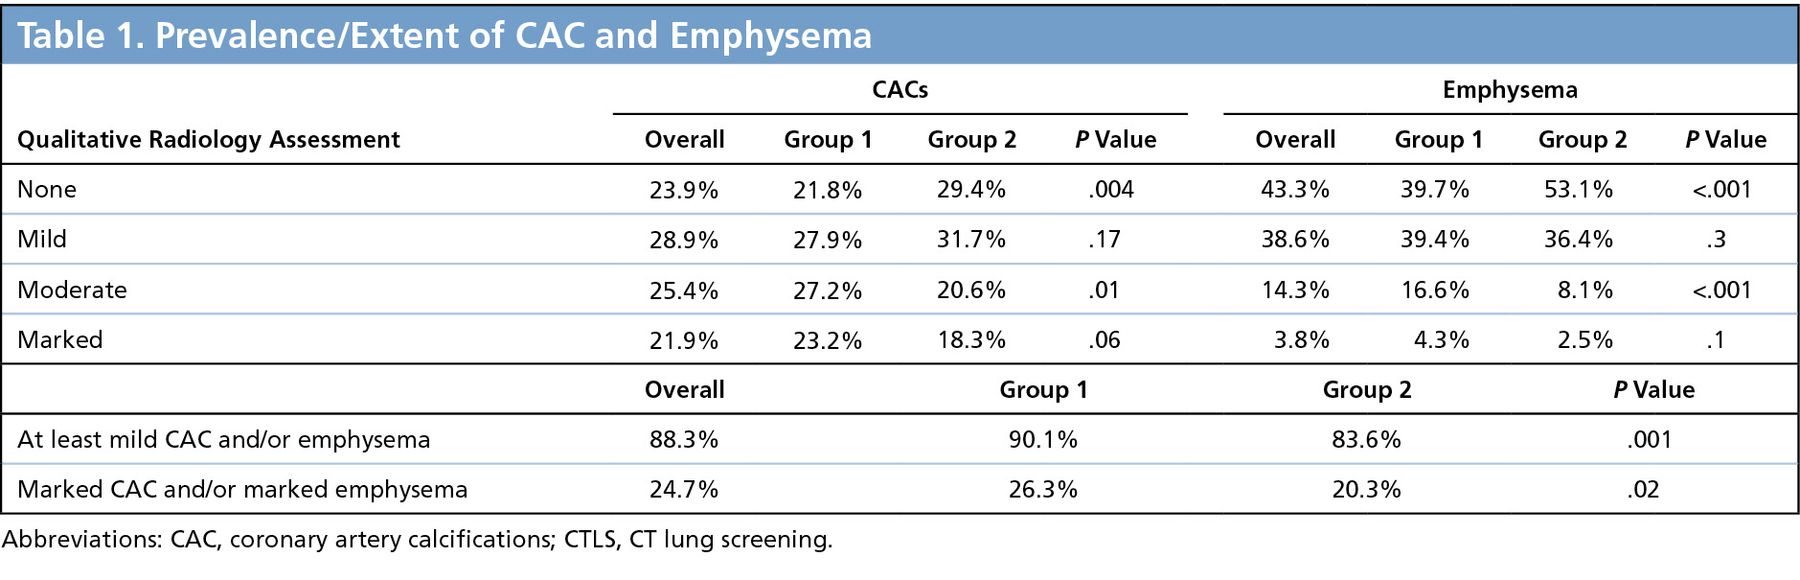 NCCN Guidelines as a Model of Extended Criteria for Lung